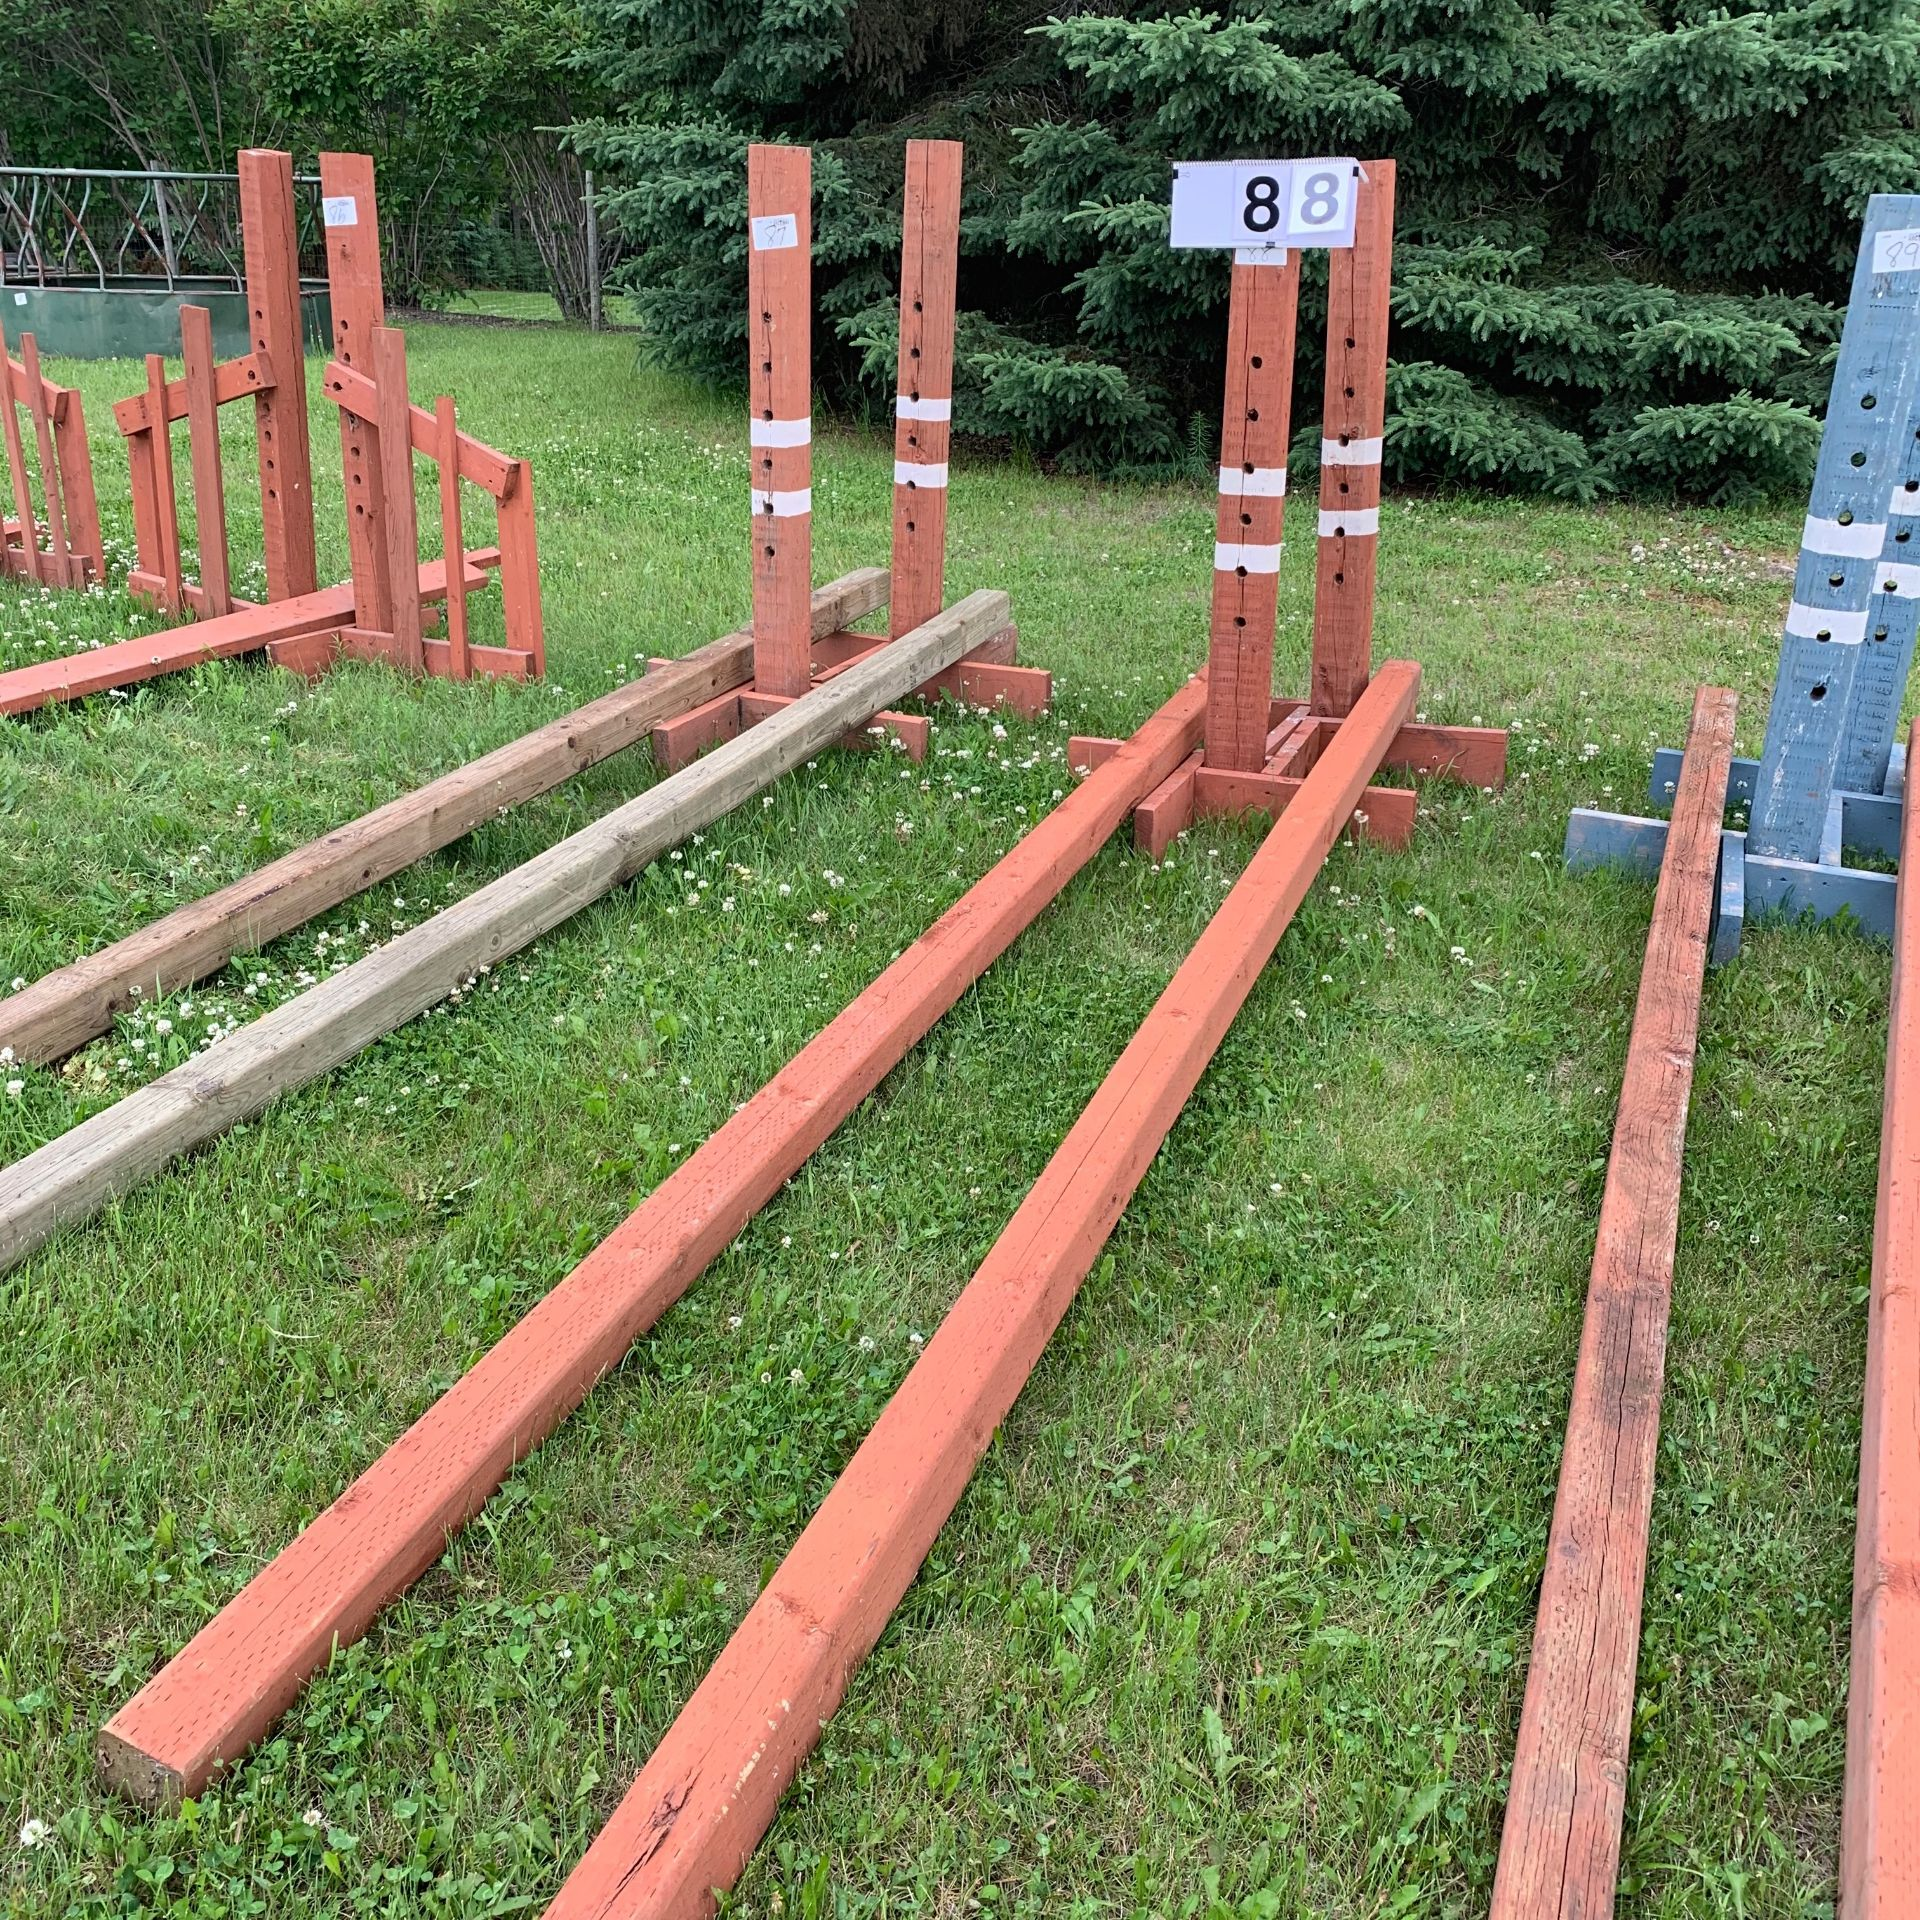 Jumping Rails - Image 2 of 2